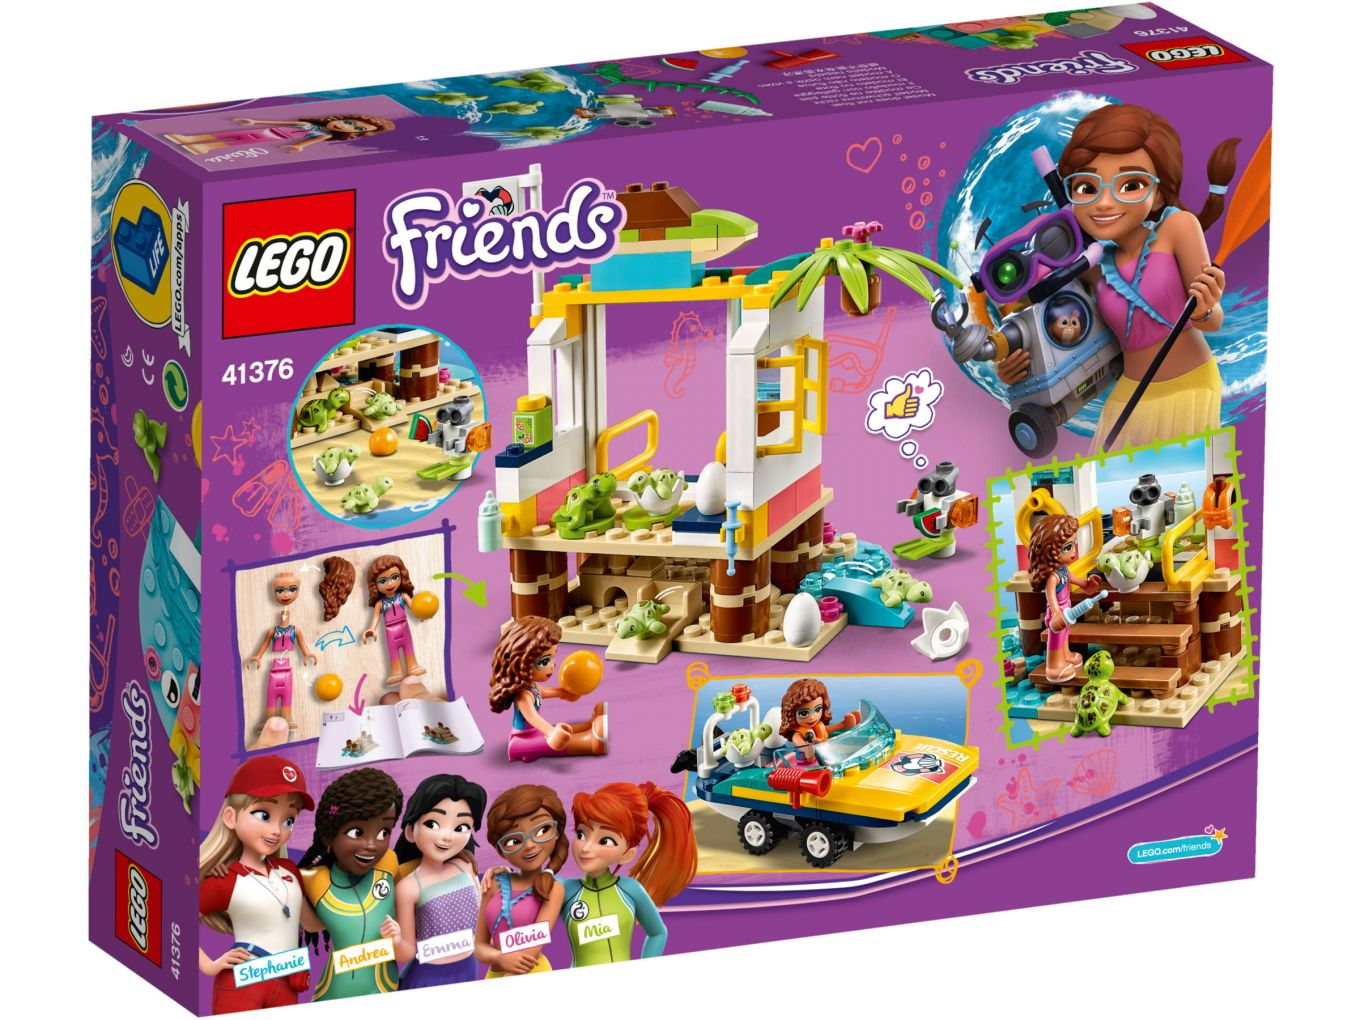 lego-friends-turtle-rescue-41376-2019-box-back zusammengebaut.com